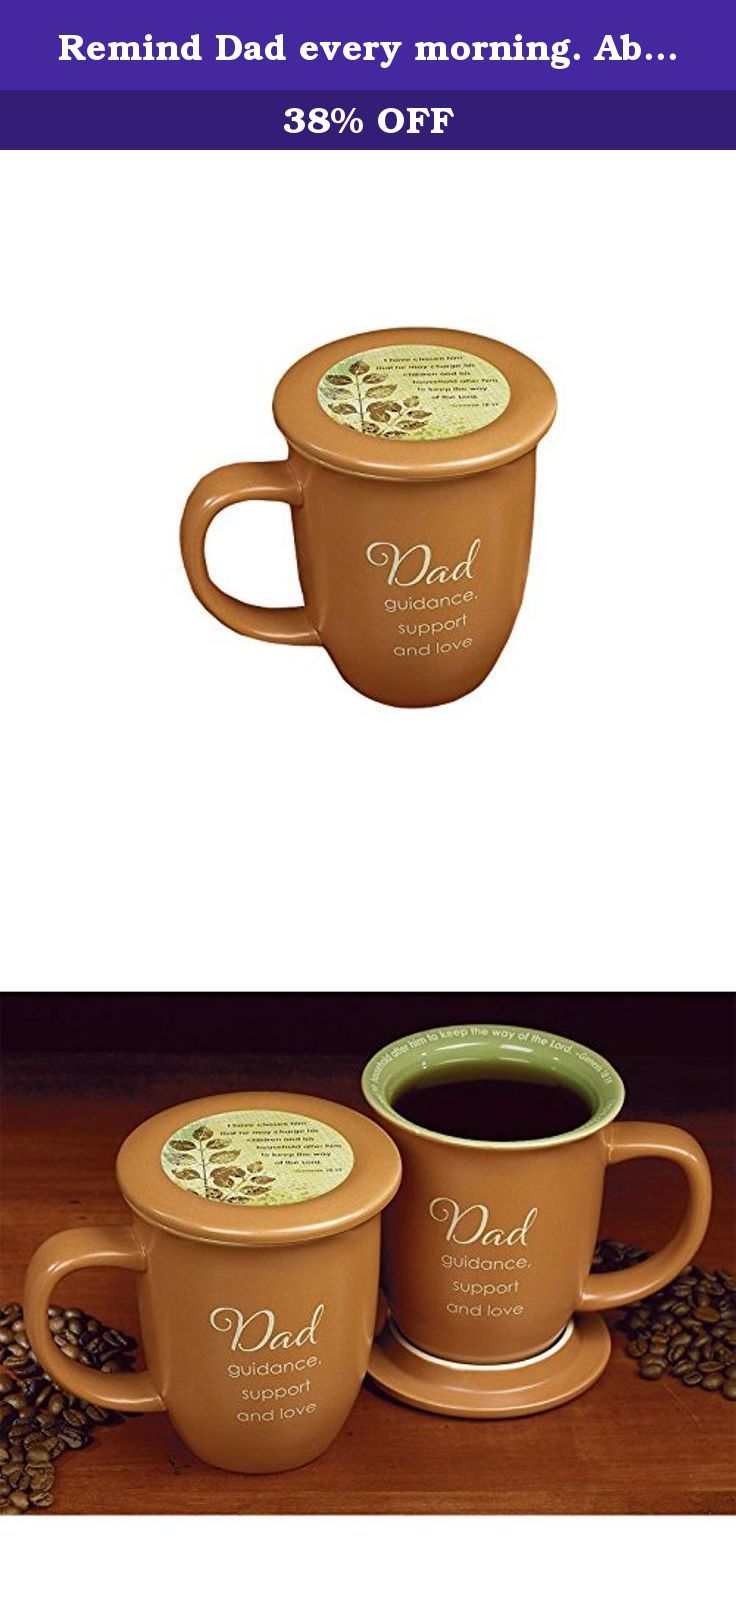 """Remind Dad every morning. Abbey Press Dad Coaster Mug - Wall Décor Inspirational Religious Gifts 55740T-ABBEY Abbey Press. Abbey Press 4"""" x 4.38"""" Dad Mug and Coaster Set. Microwave/dishwasher safe ceramic mug features a matte finish exterior, glossy interior. Includes a coaster that can also be used as a lid. Mug, 14 oz.; 4 3/8"""" high; coaster, 4"""" diam. Mug message: Dad guidance, support and love Coaster/lid message: I have chosen him, that he may charge his children and his household…"""